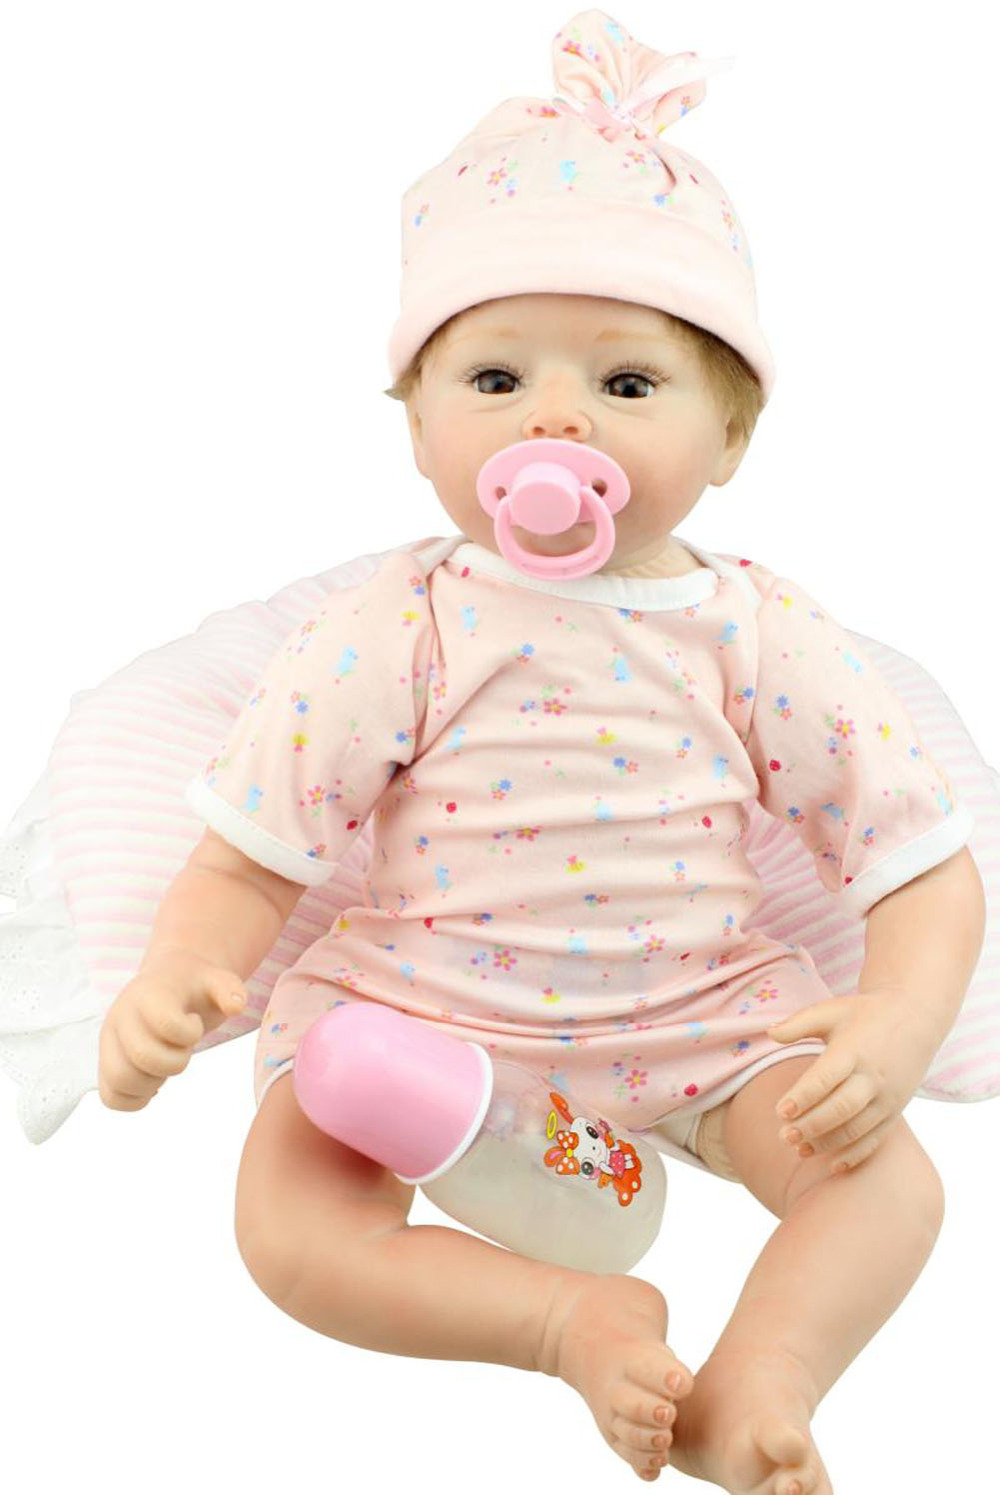 22inch Silicone Lifelike Reborn Baby Alive Doll Girl With Milk Tooth Handmade Realistic Gift Toys Women Collects Dolls Aliexpress